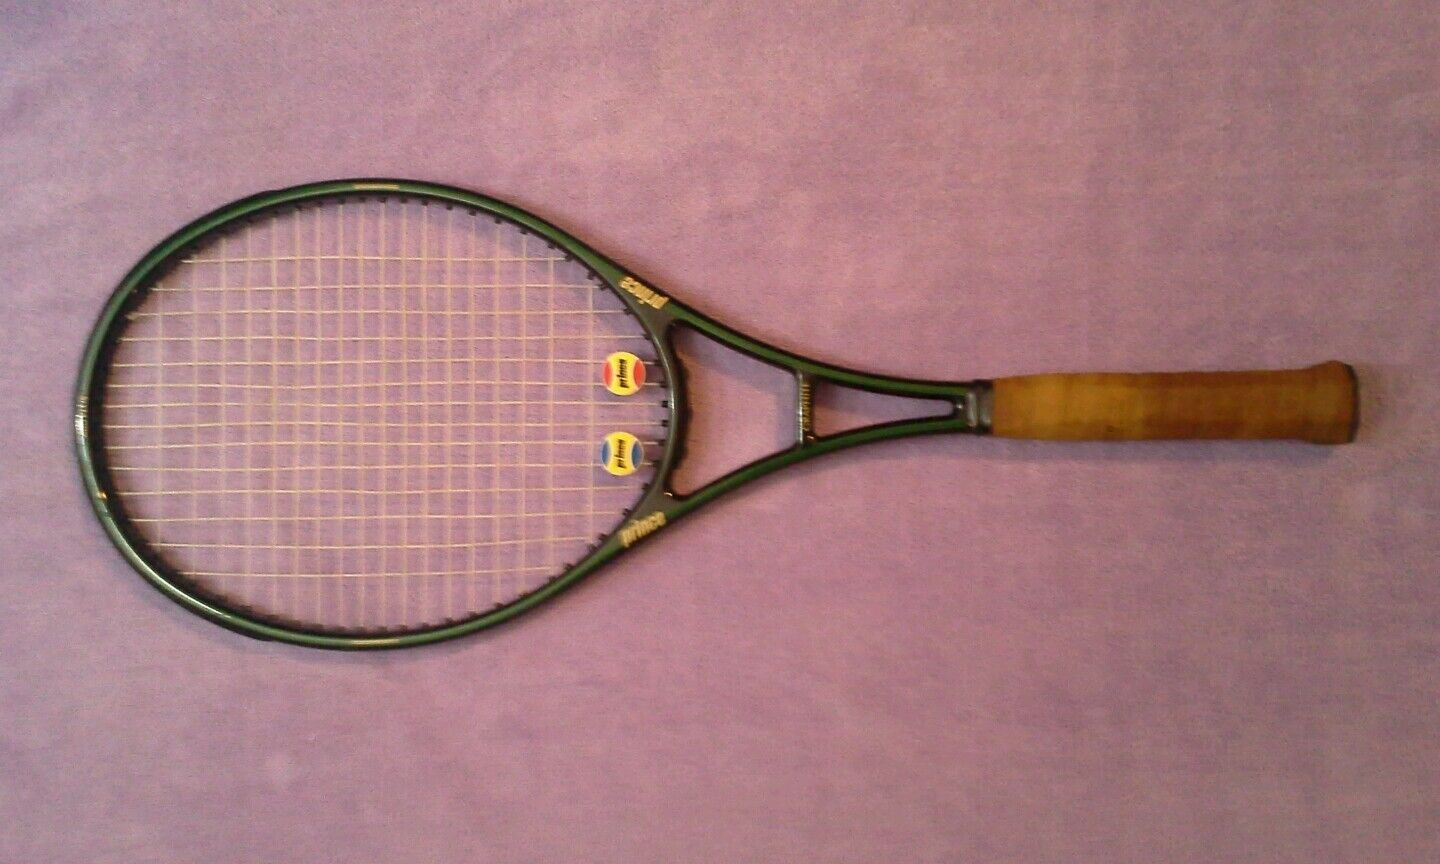 Prince Graphite 93 in Very Nice Condition (4 5/8's L5)